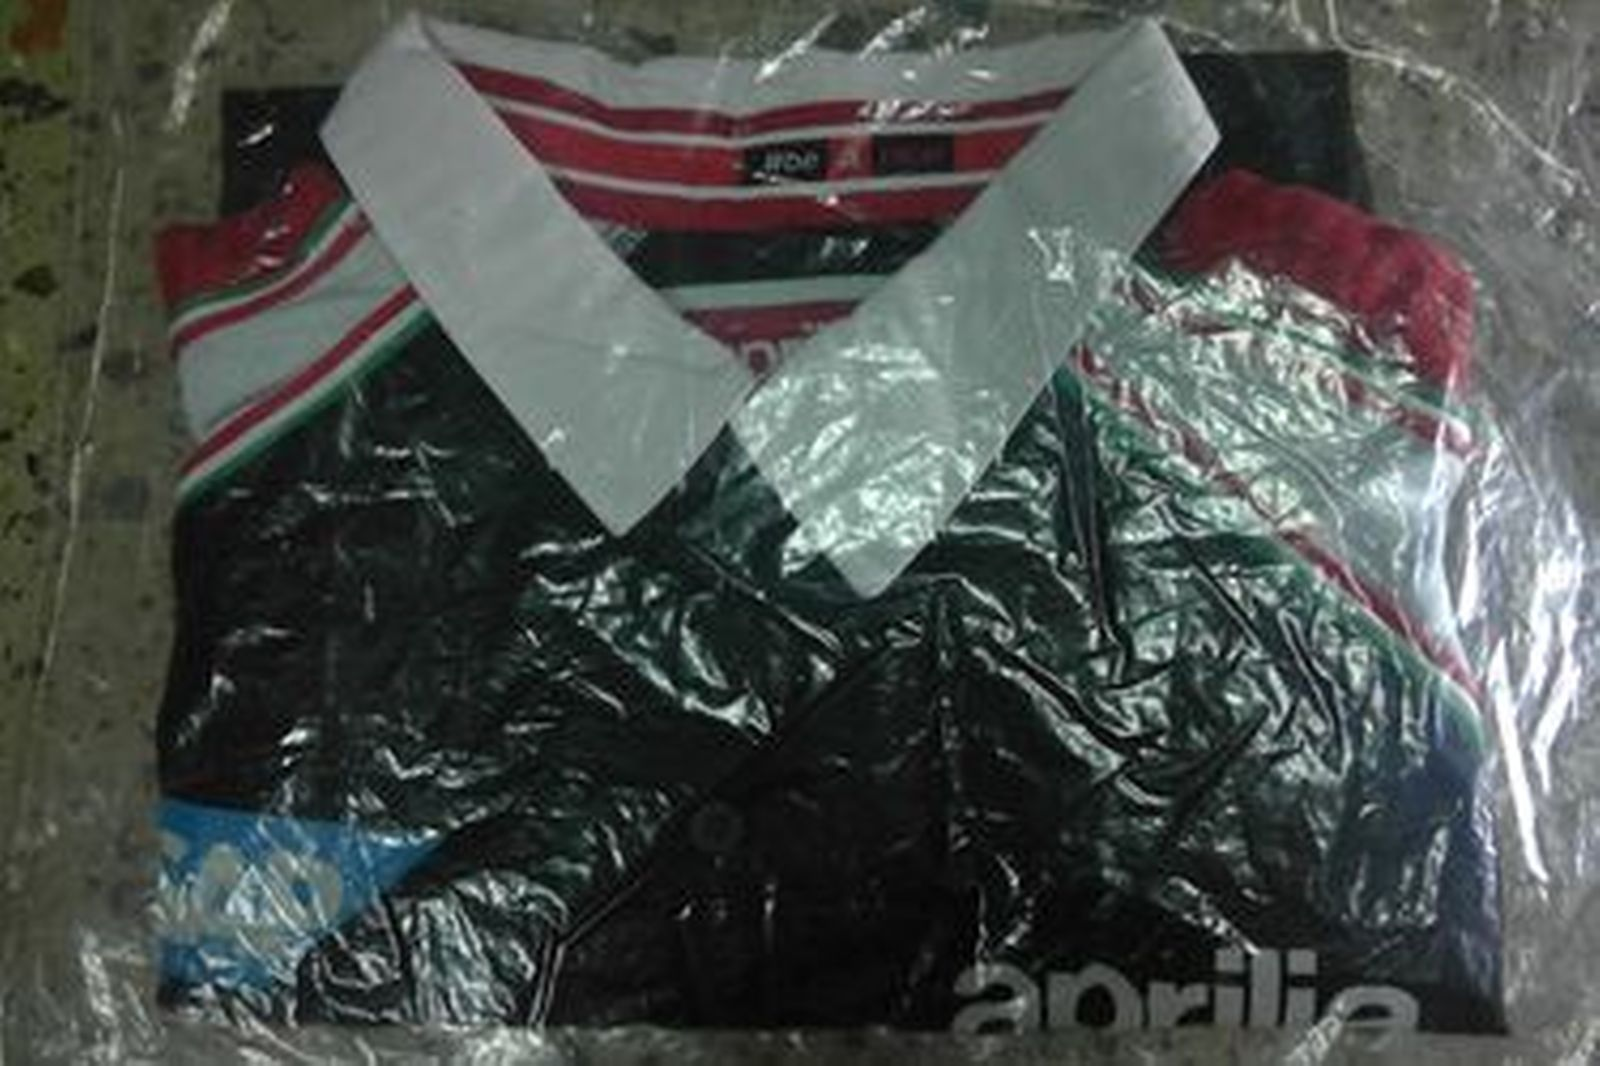 Aprilia Team Issued Shirt